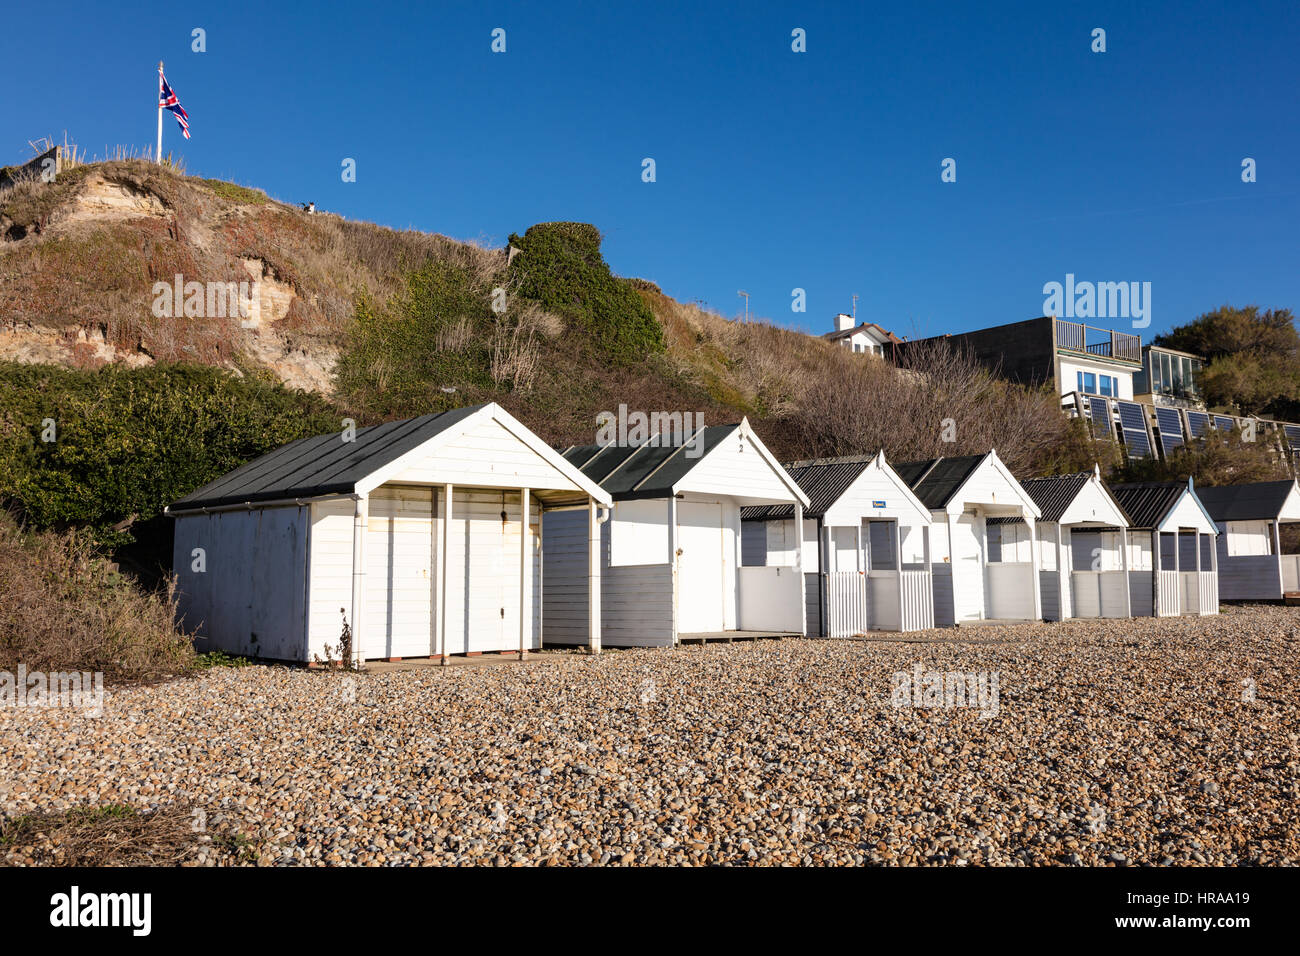 A row of beach huts under the cliffs at Bexhill on Sea, on the cliffs is a flagpole with a Union Flag under which - Stock Image